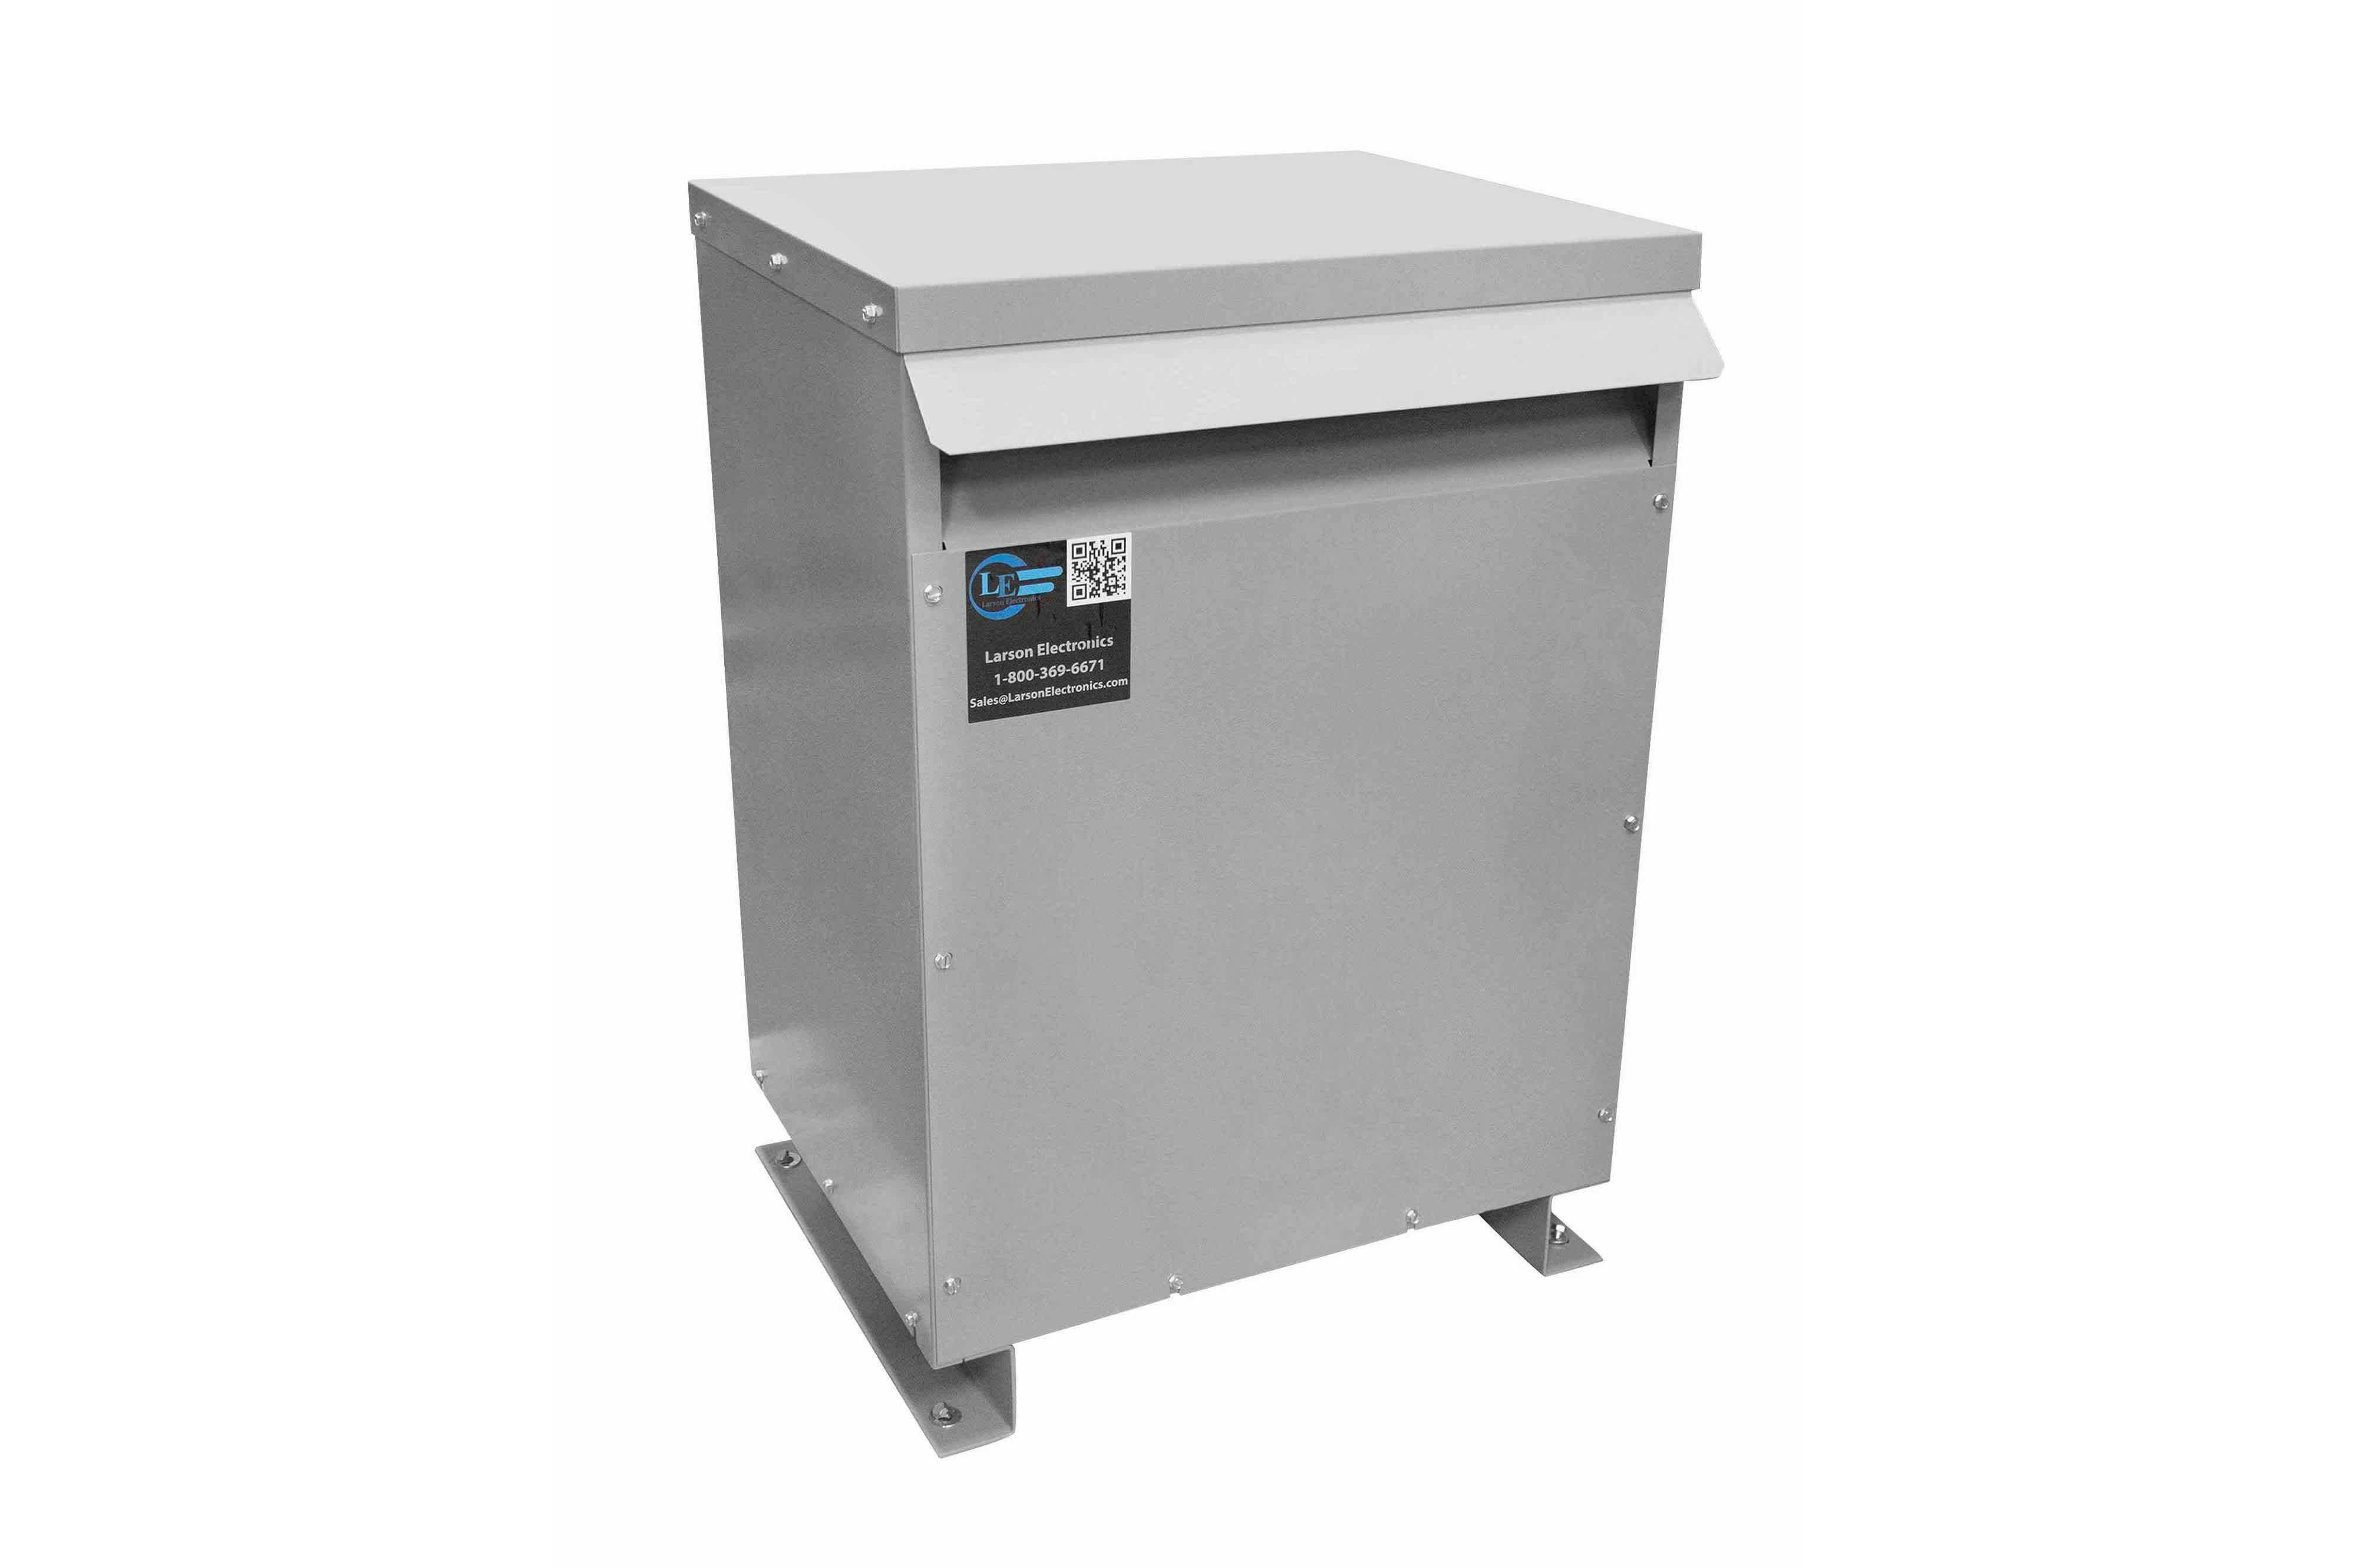 13 kVA 3PH Isolation Transformer, 230V Wye Primary, 480Y/277 Wye-N Secondary, N3R, Ventilated, 60 Hz